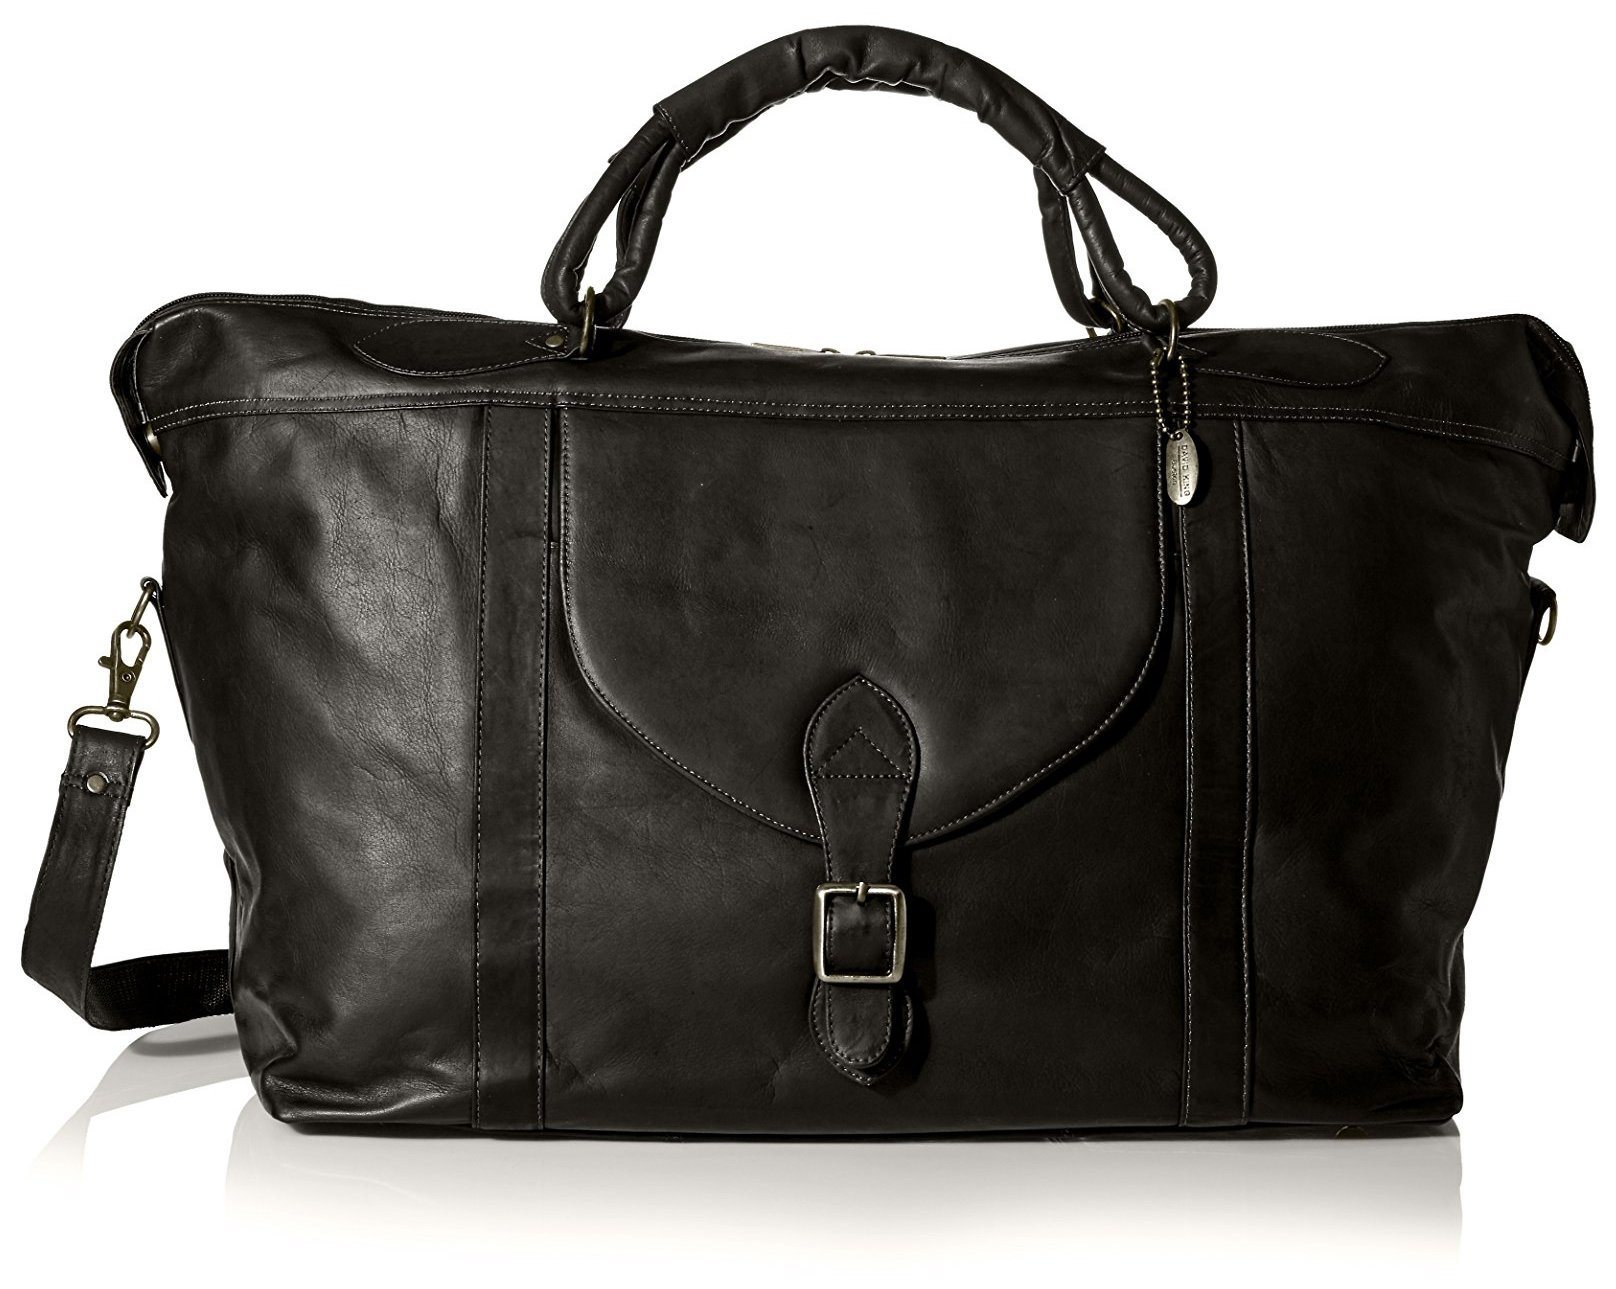 David King Men's Top Zip Travel Bag, Black